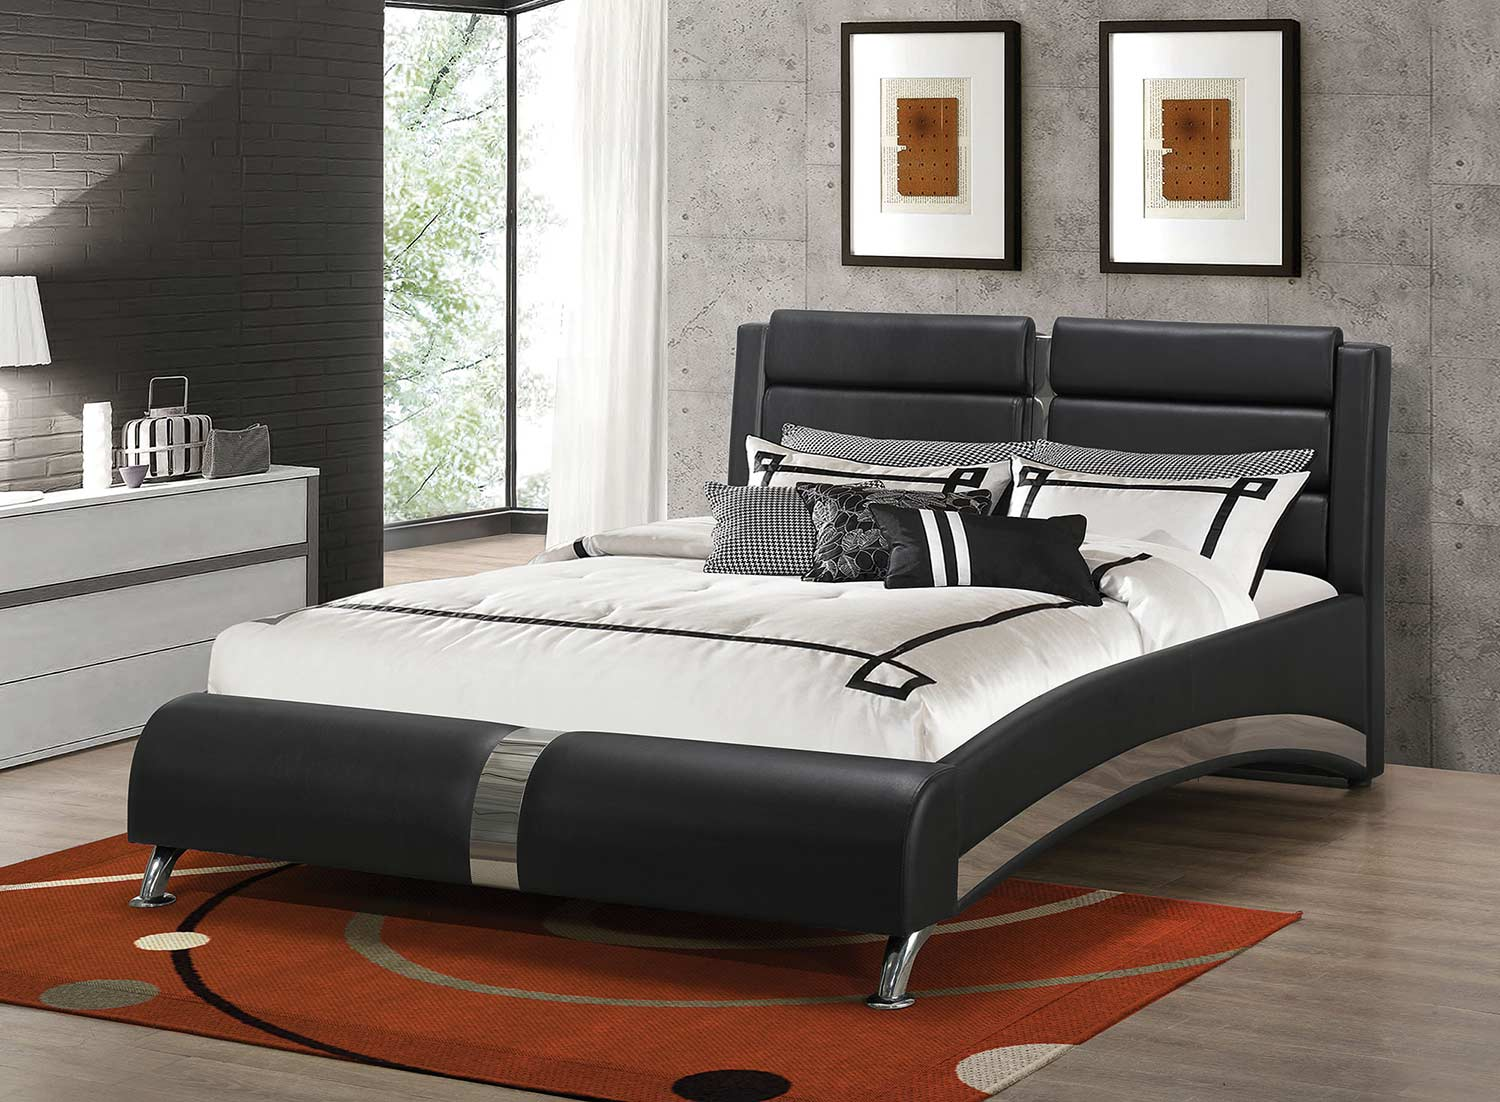 Coaster Havering Upholstered Platform Bed - Black